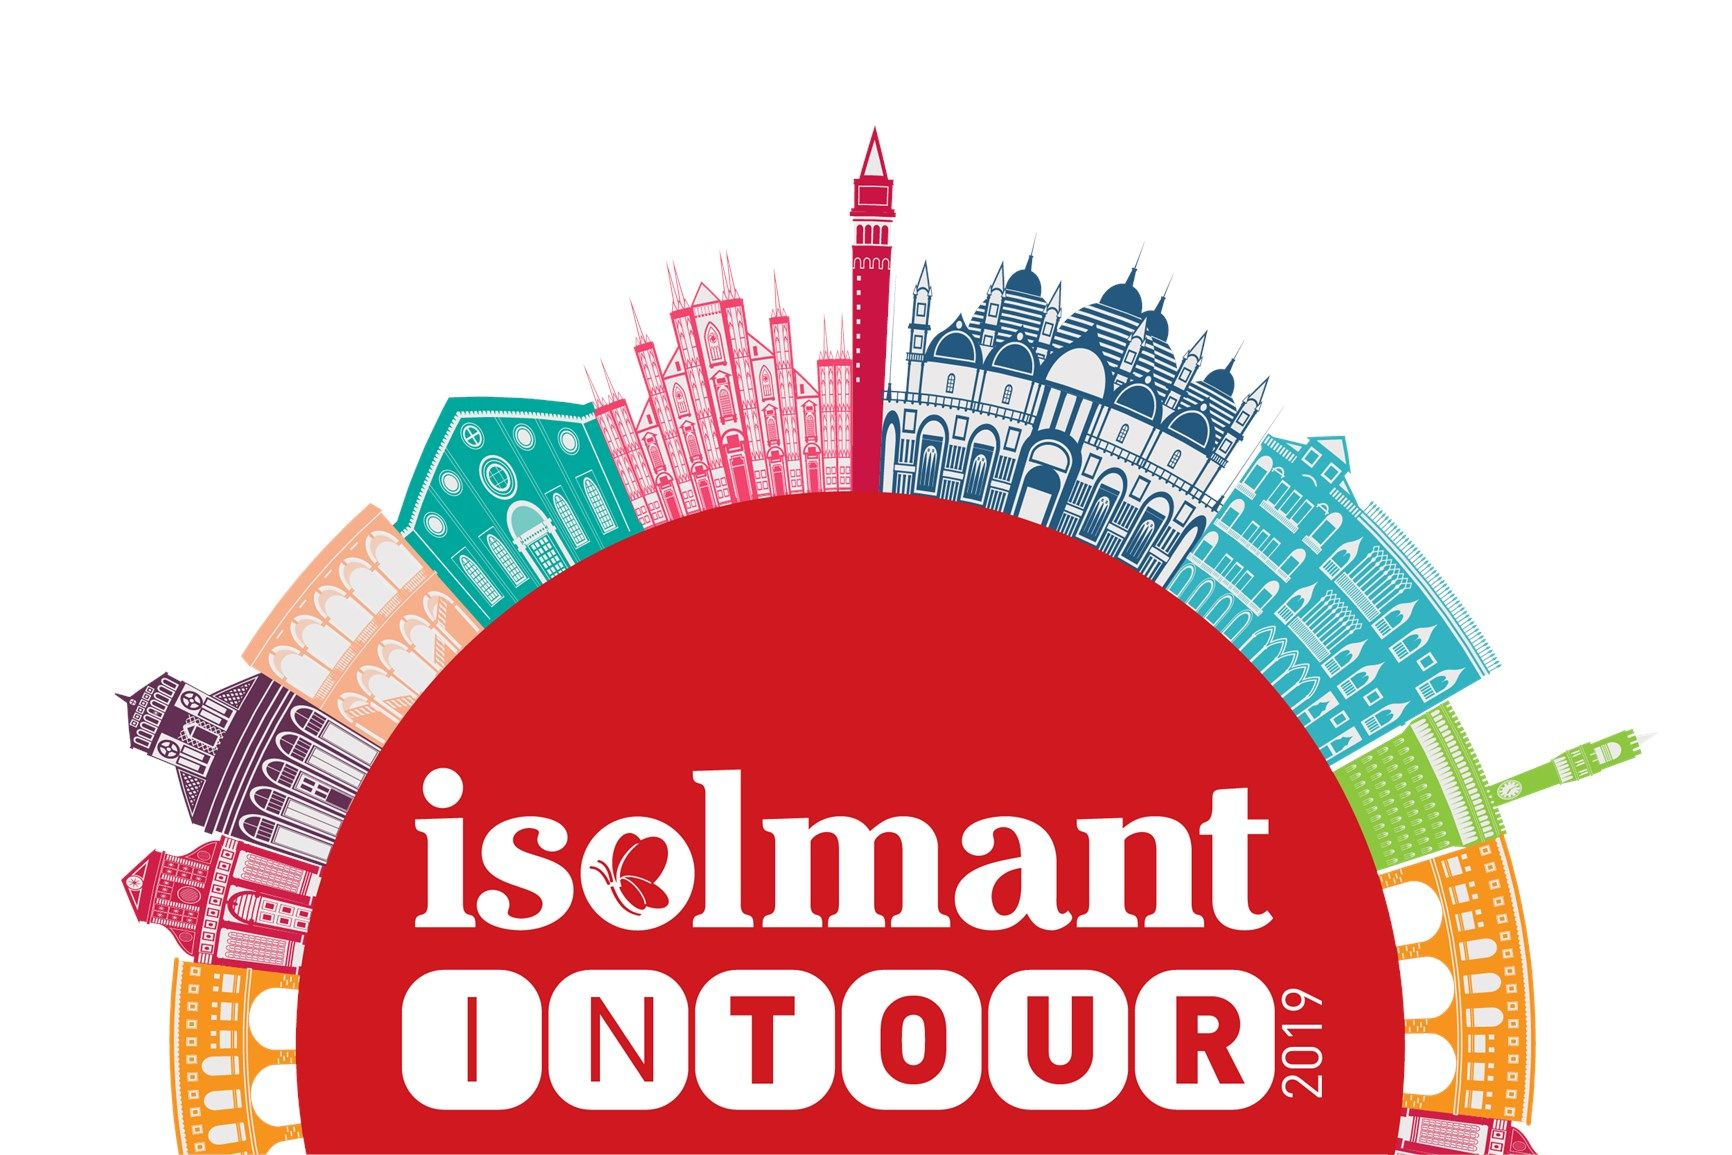 Isolmant in tour: 7 nuove date a ottobre